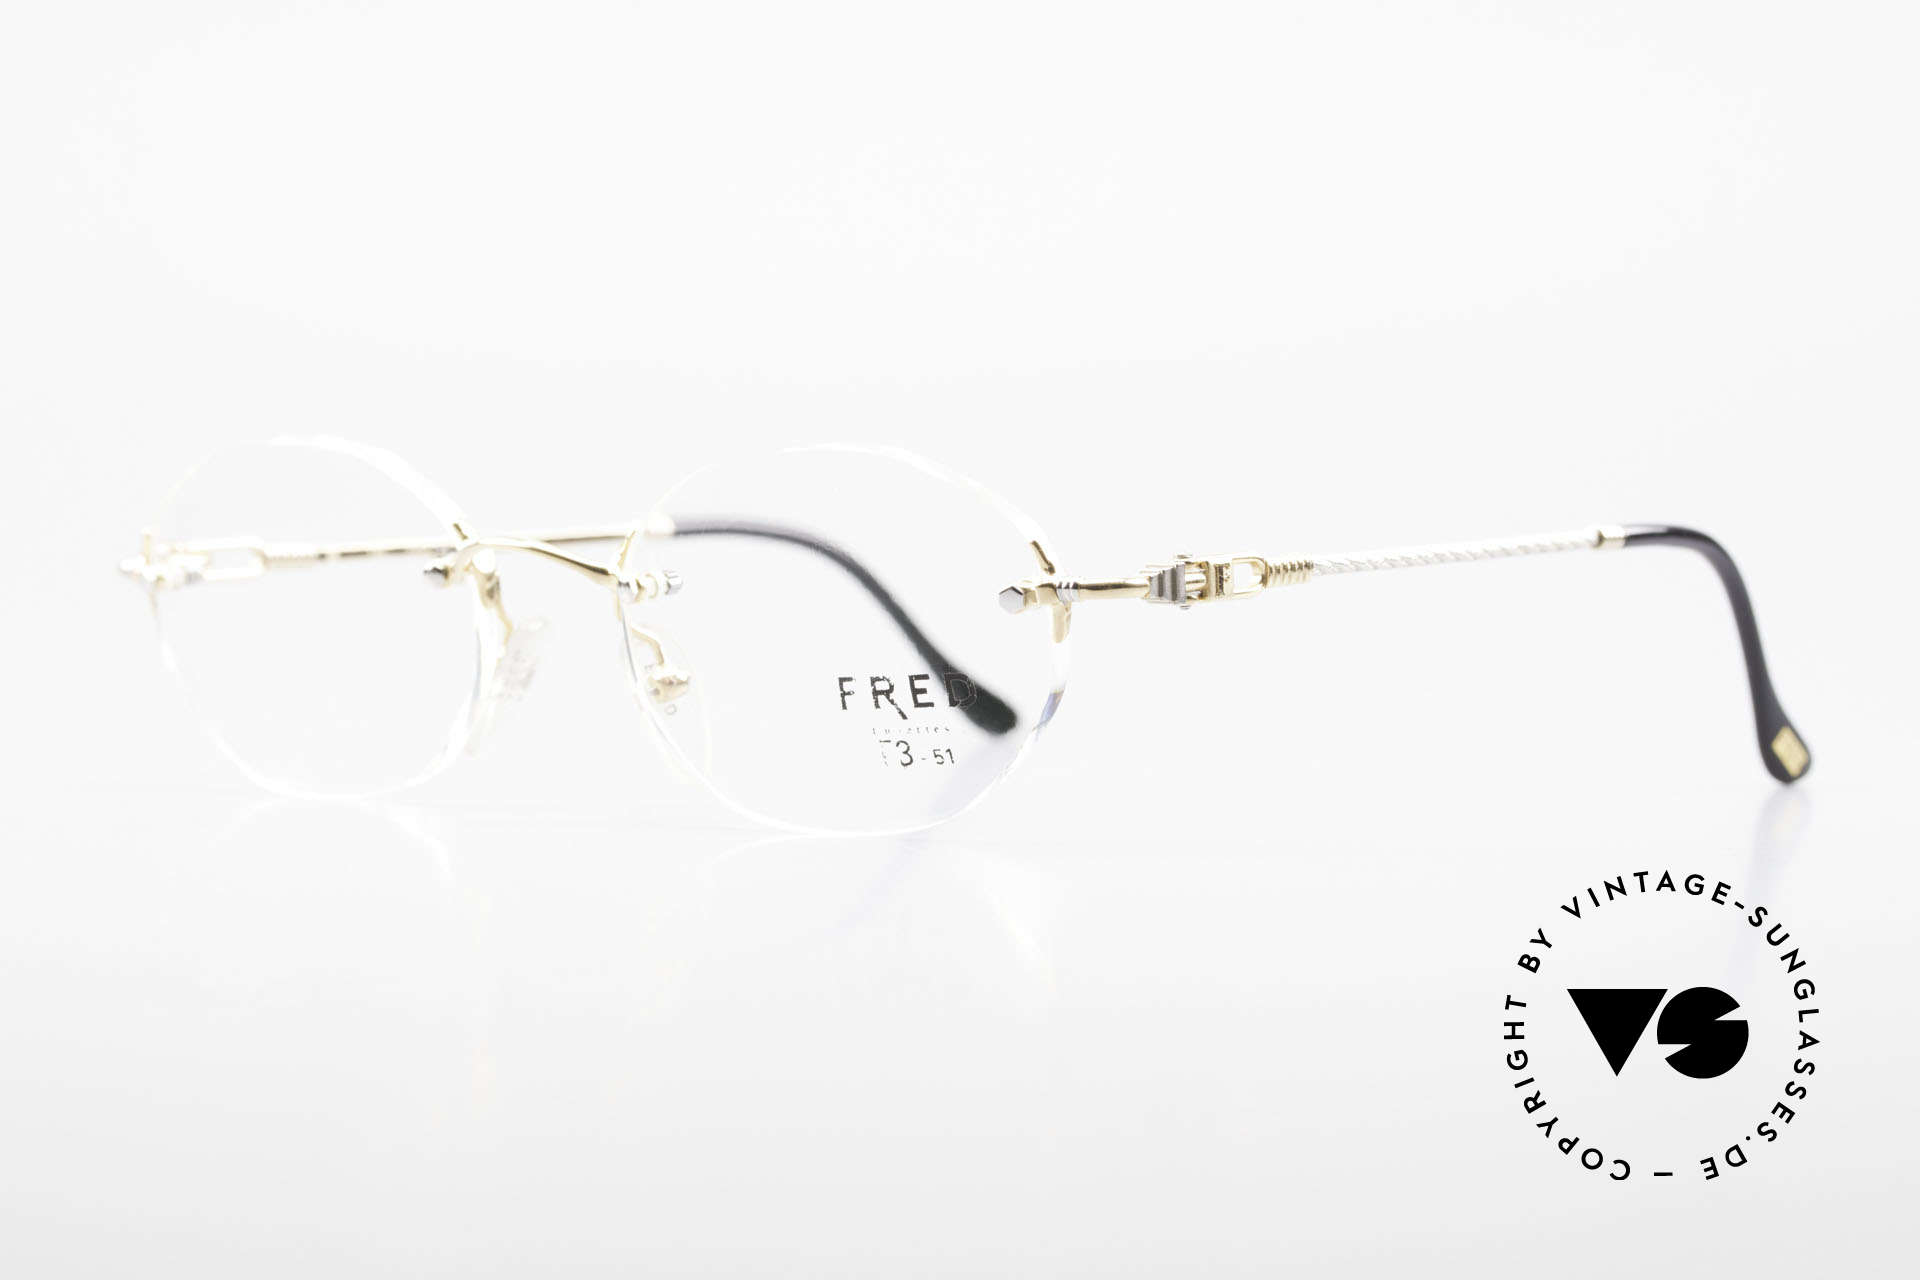 Fred Fidji Rimless Round Luxury Glasses, model named after the Fiji Islands (South Pacific Ocean), Made for Men and Women